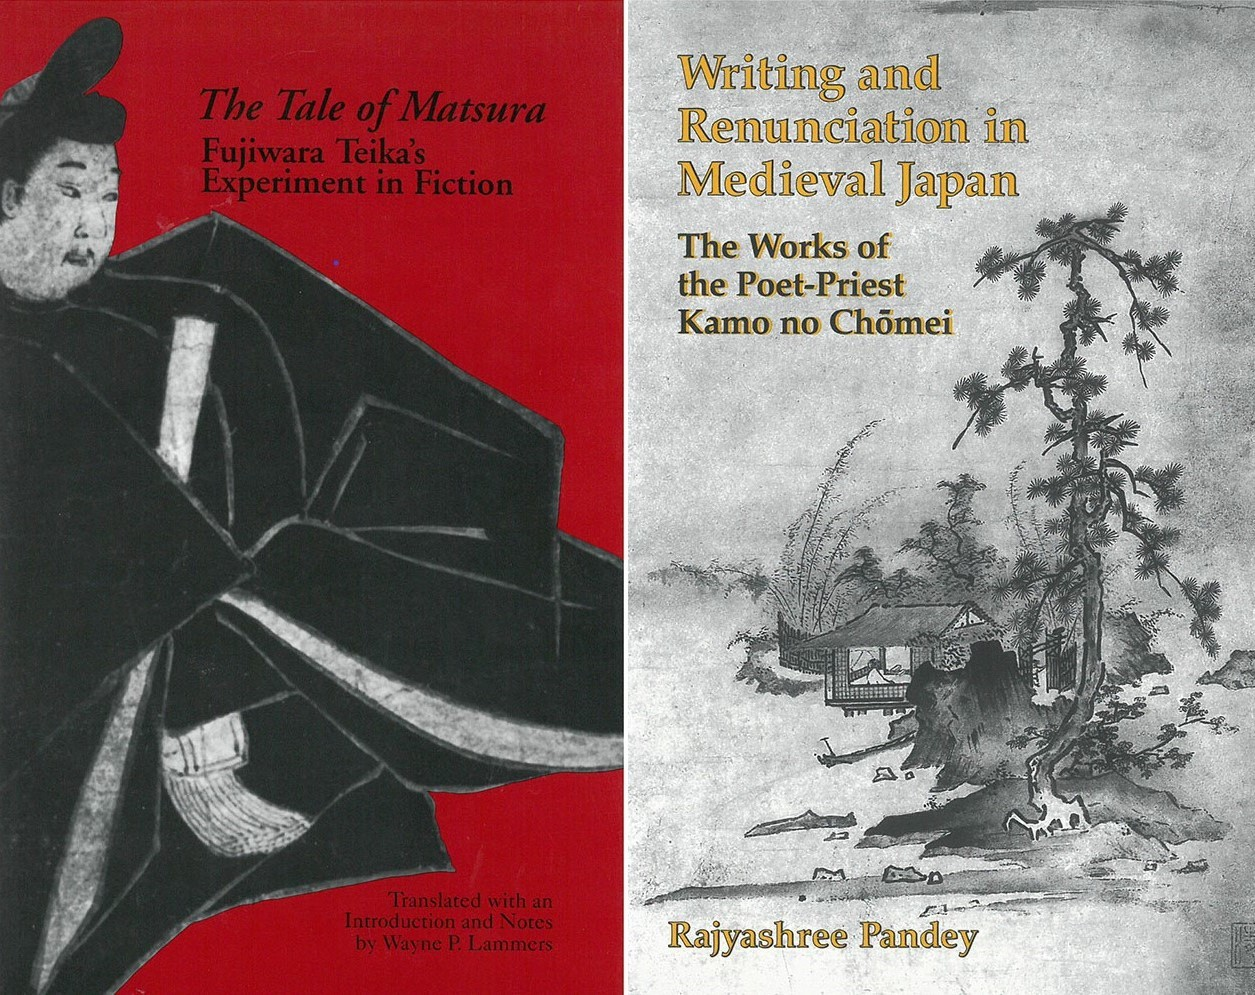 Covers of two books in Asian studies by Wayne P. Lammers and Rajyashree Pandey